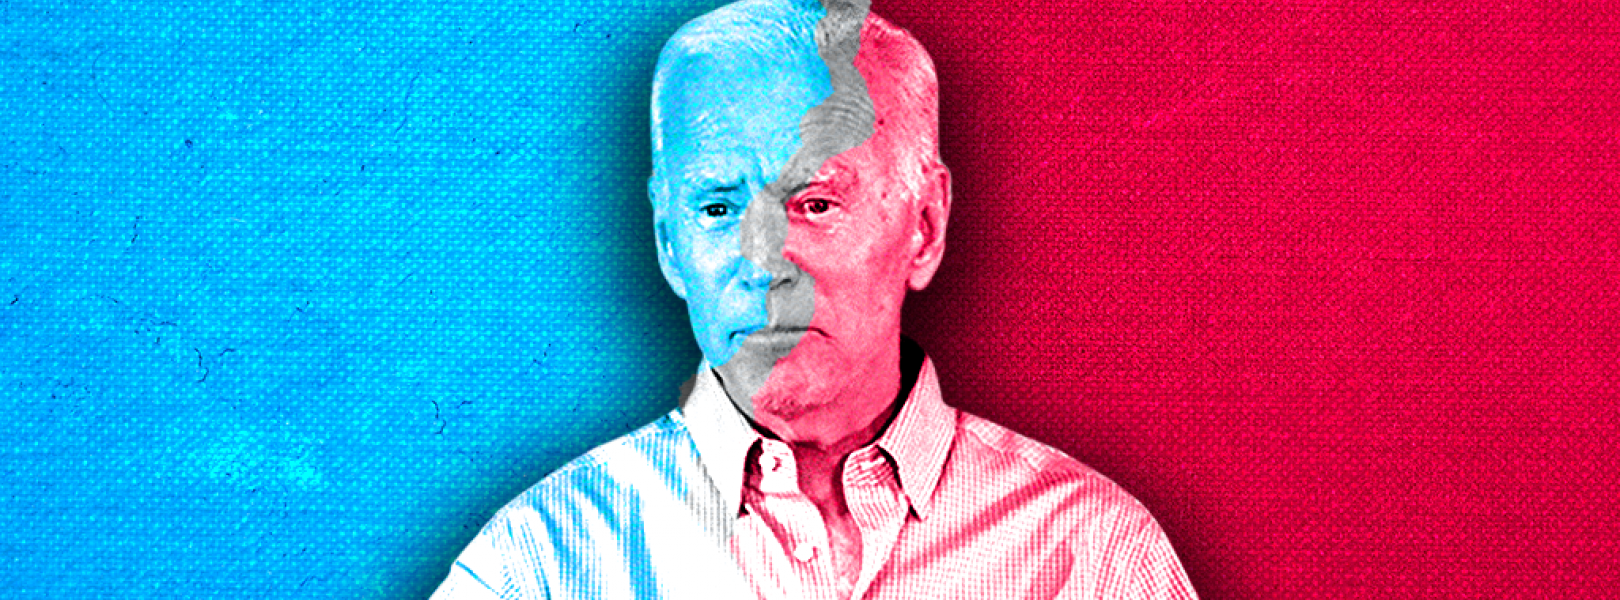 Joe Biden with a blue and red background